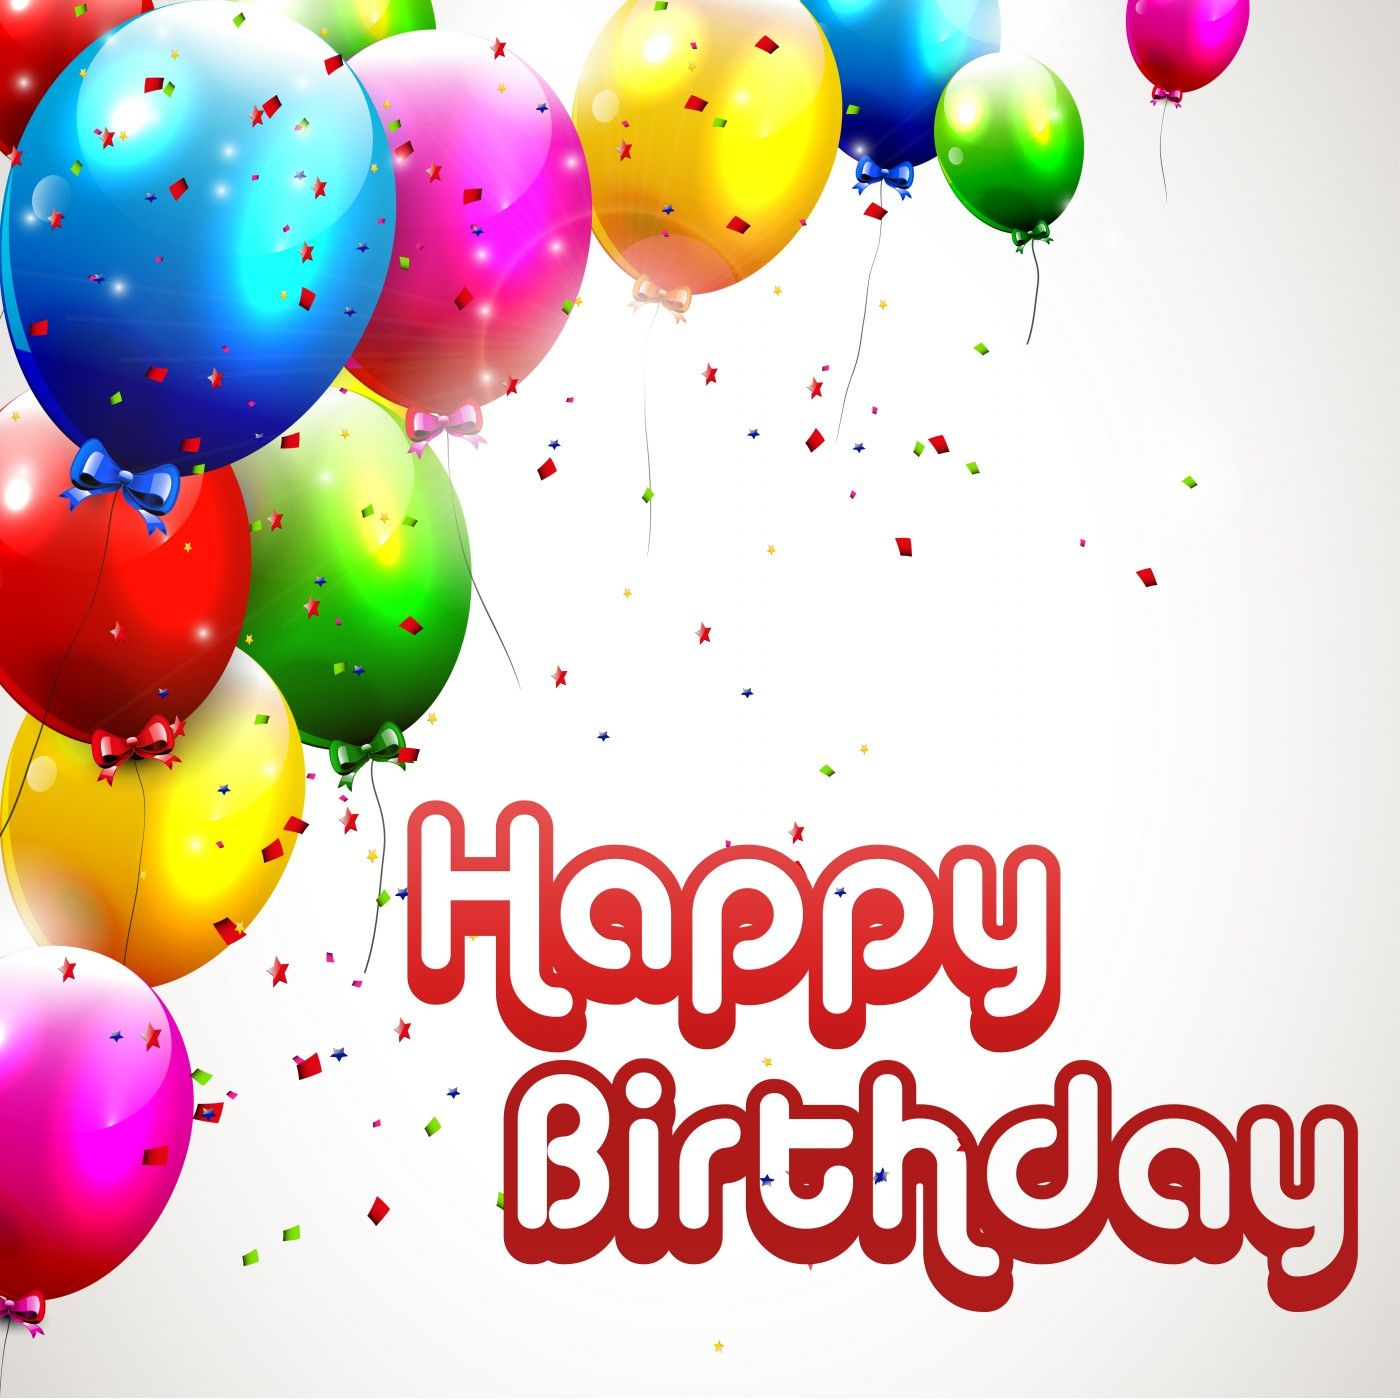 Happy birthday images 3 wallpaper, download free happy birthday ...